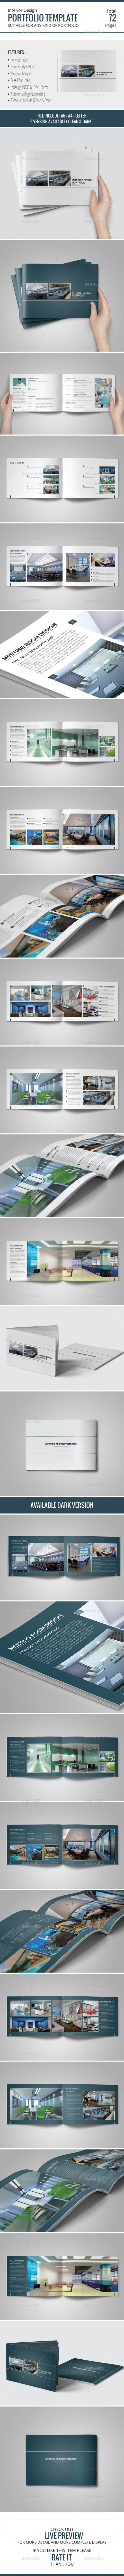 GraphicRiver Interior Design Portfolio Template 9563537